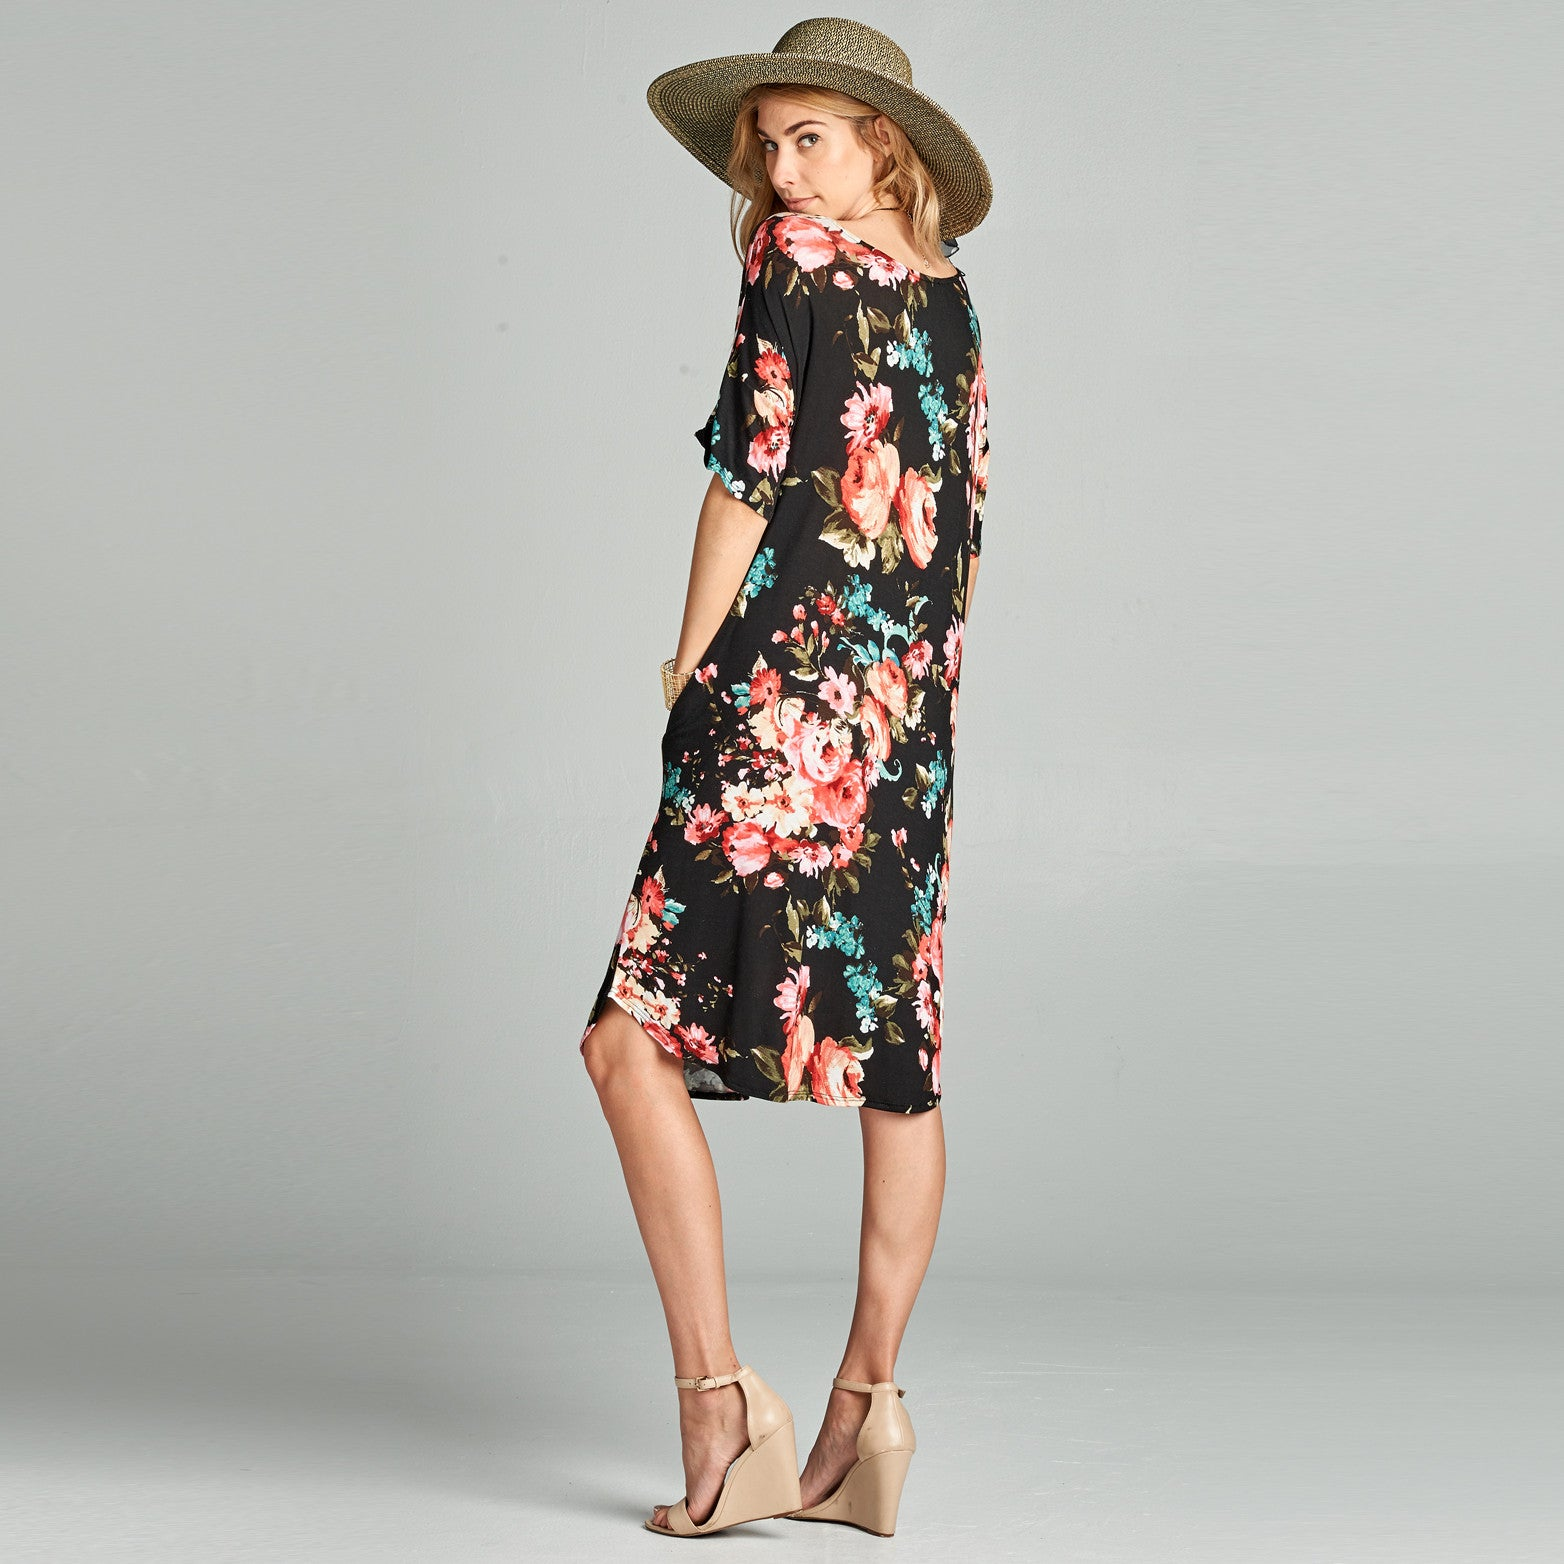 Relaxed Fit Floral Dress with Pockets